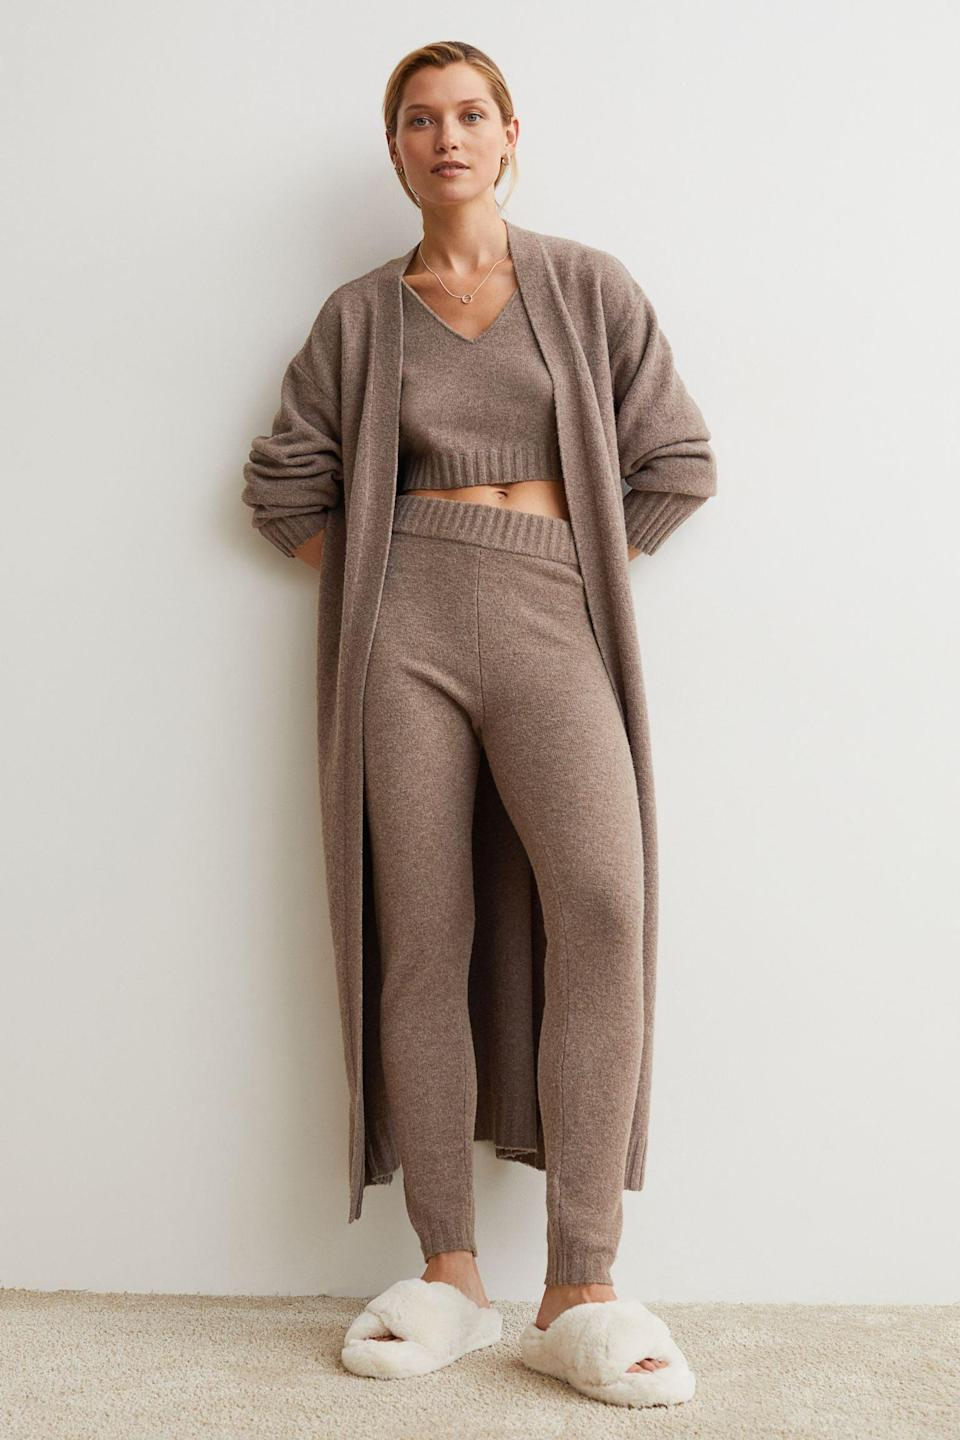 <p>These <span>Fine-knit Leggings</span> ($24, originally $30) are great picks for working from home, lounging, and everything in between. You really can't go wrong with them.</p>